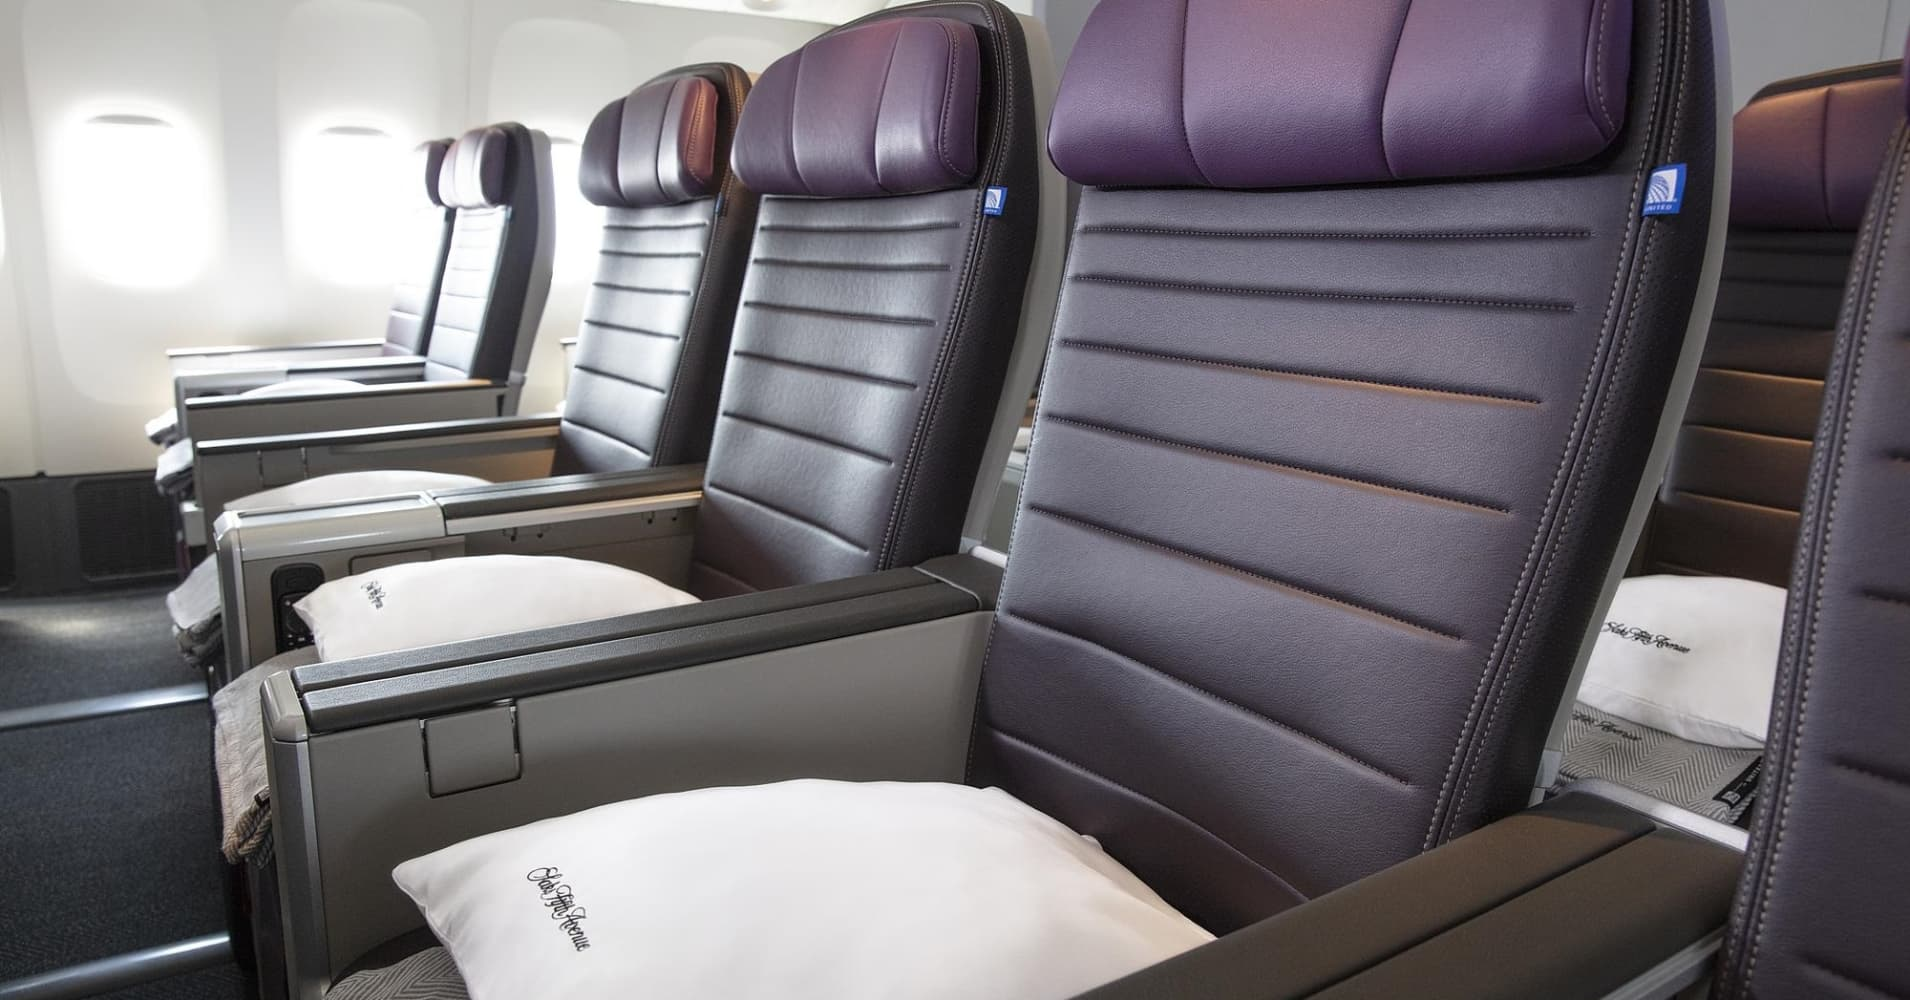 United launches new 'premium economy' class in between coach and business for some of its longest flights thumbnail